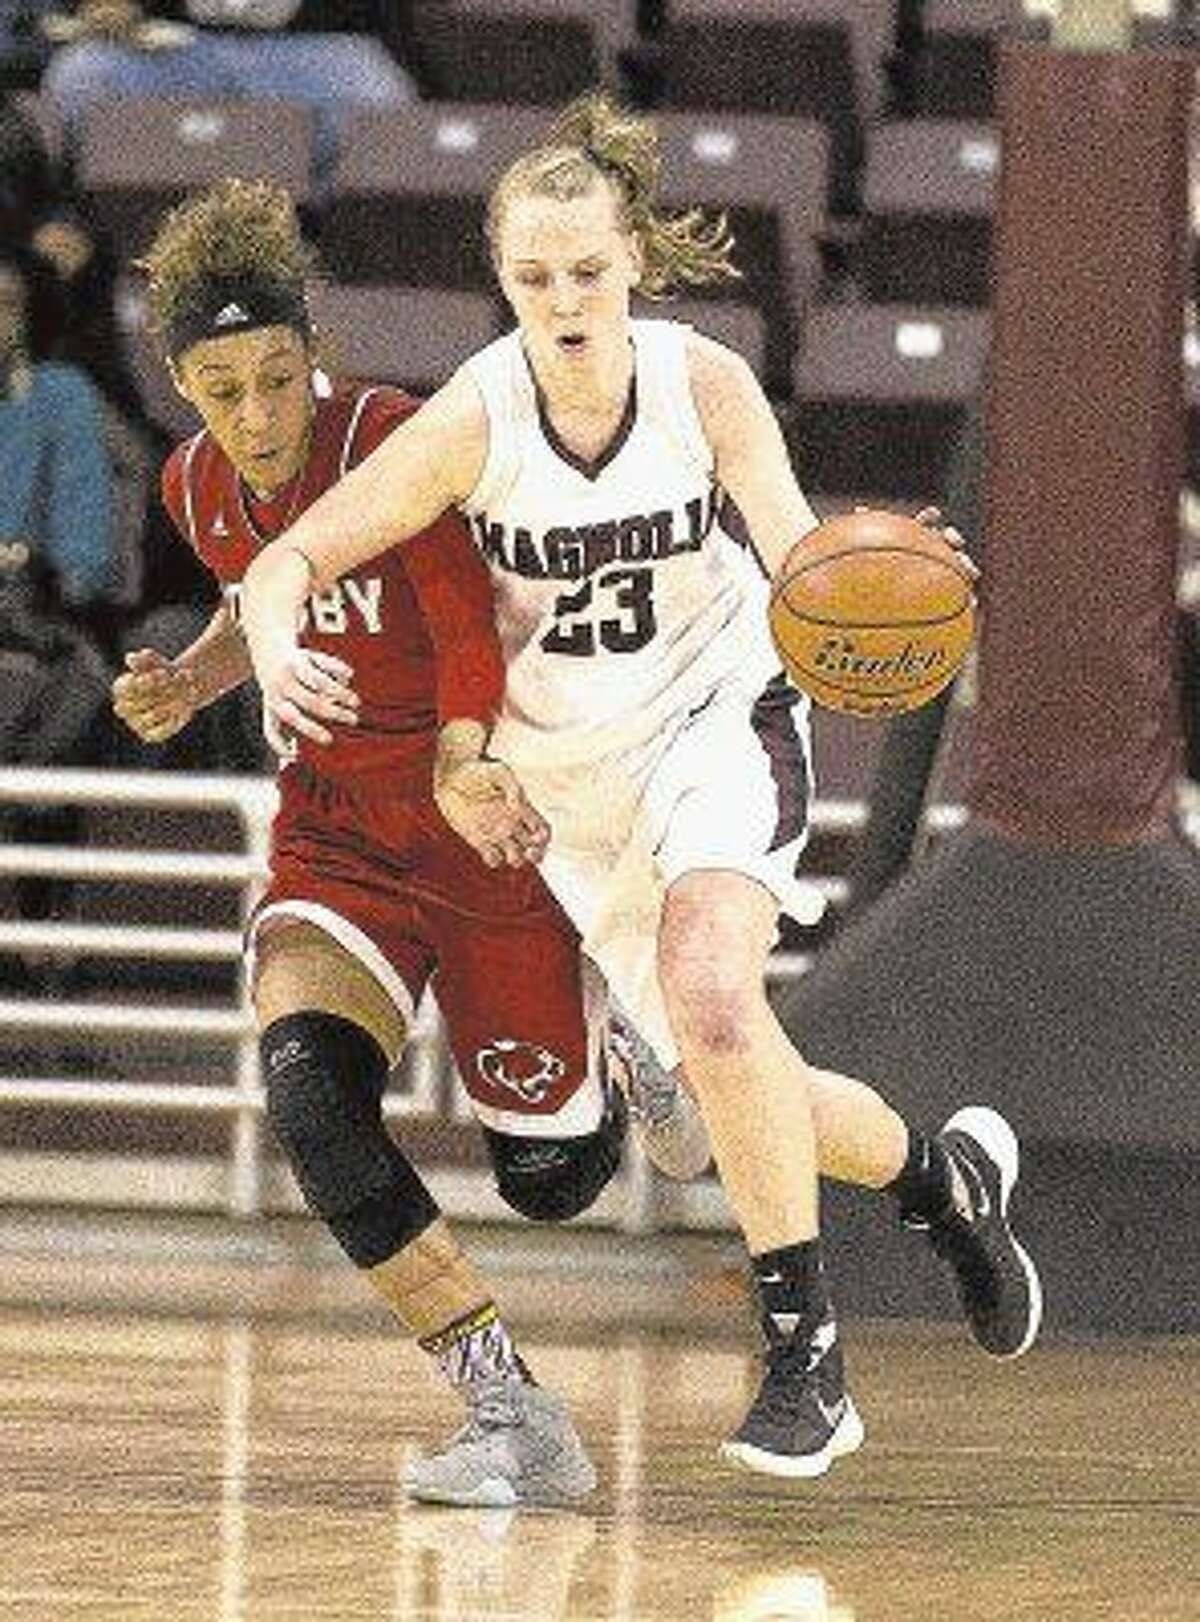 Magnolia junior Alexus Wykoff is the The Courier's Player of the Year.